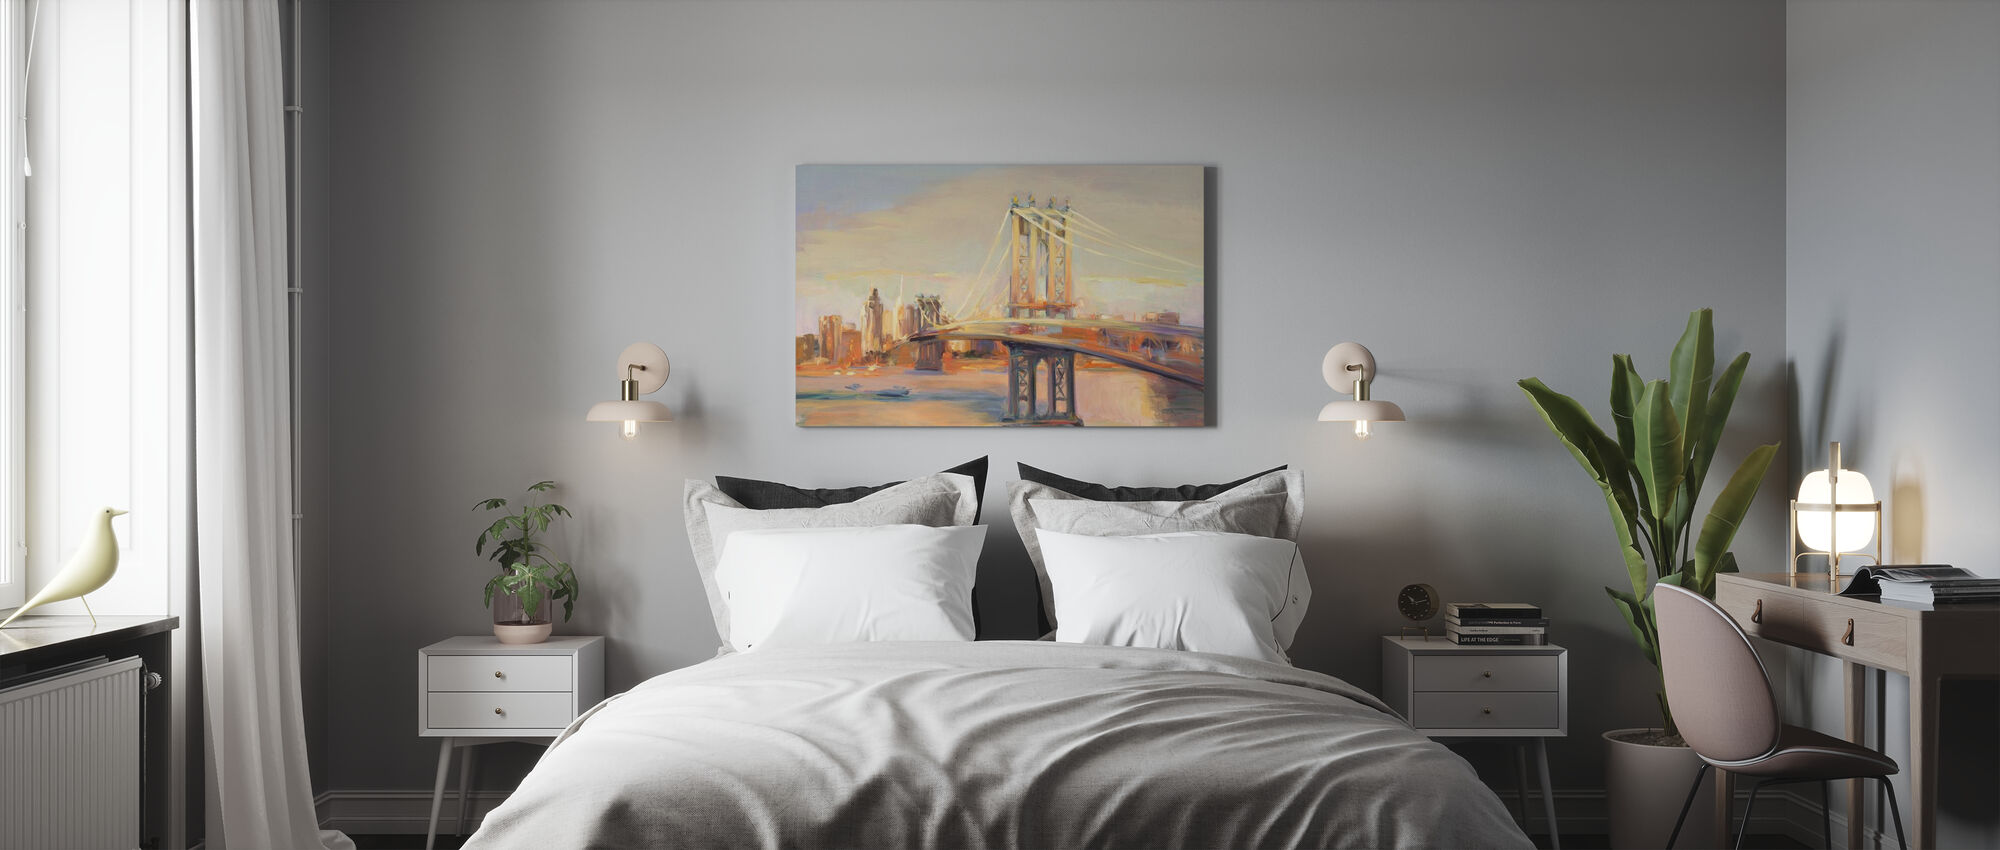 Manhattan Reflection - Canvas print - Bedroom